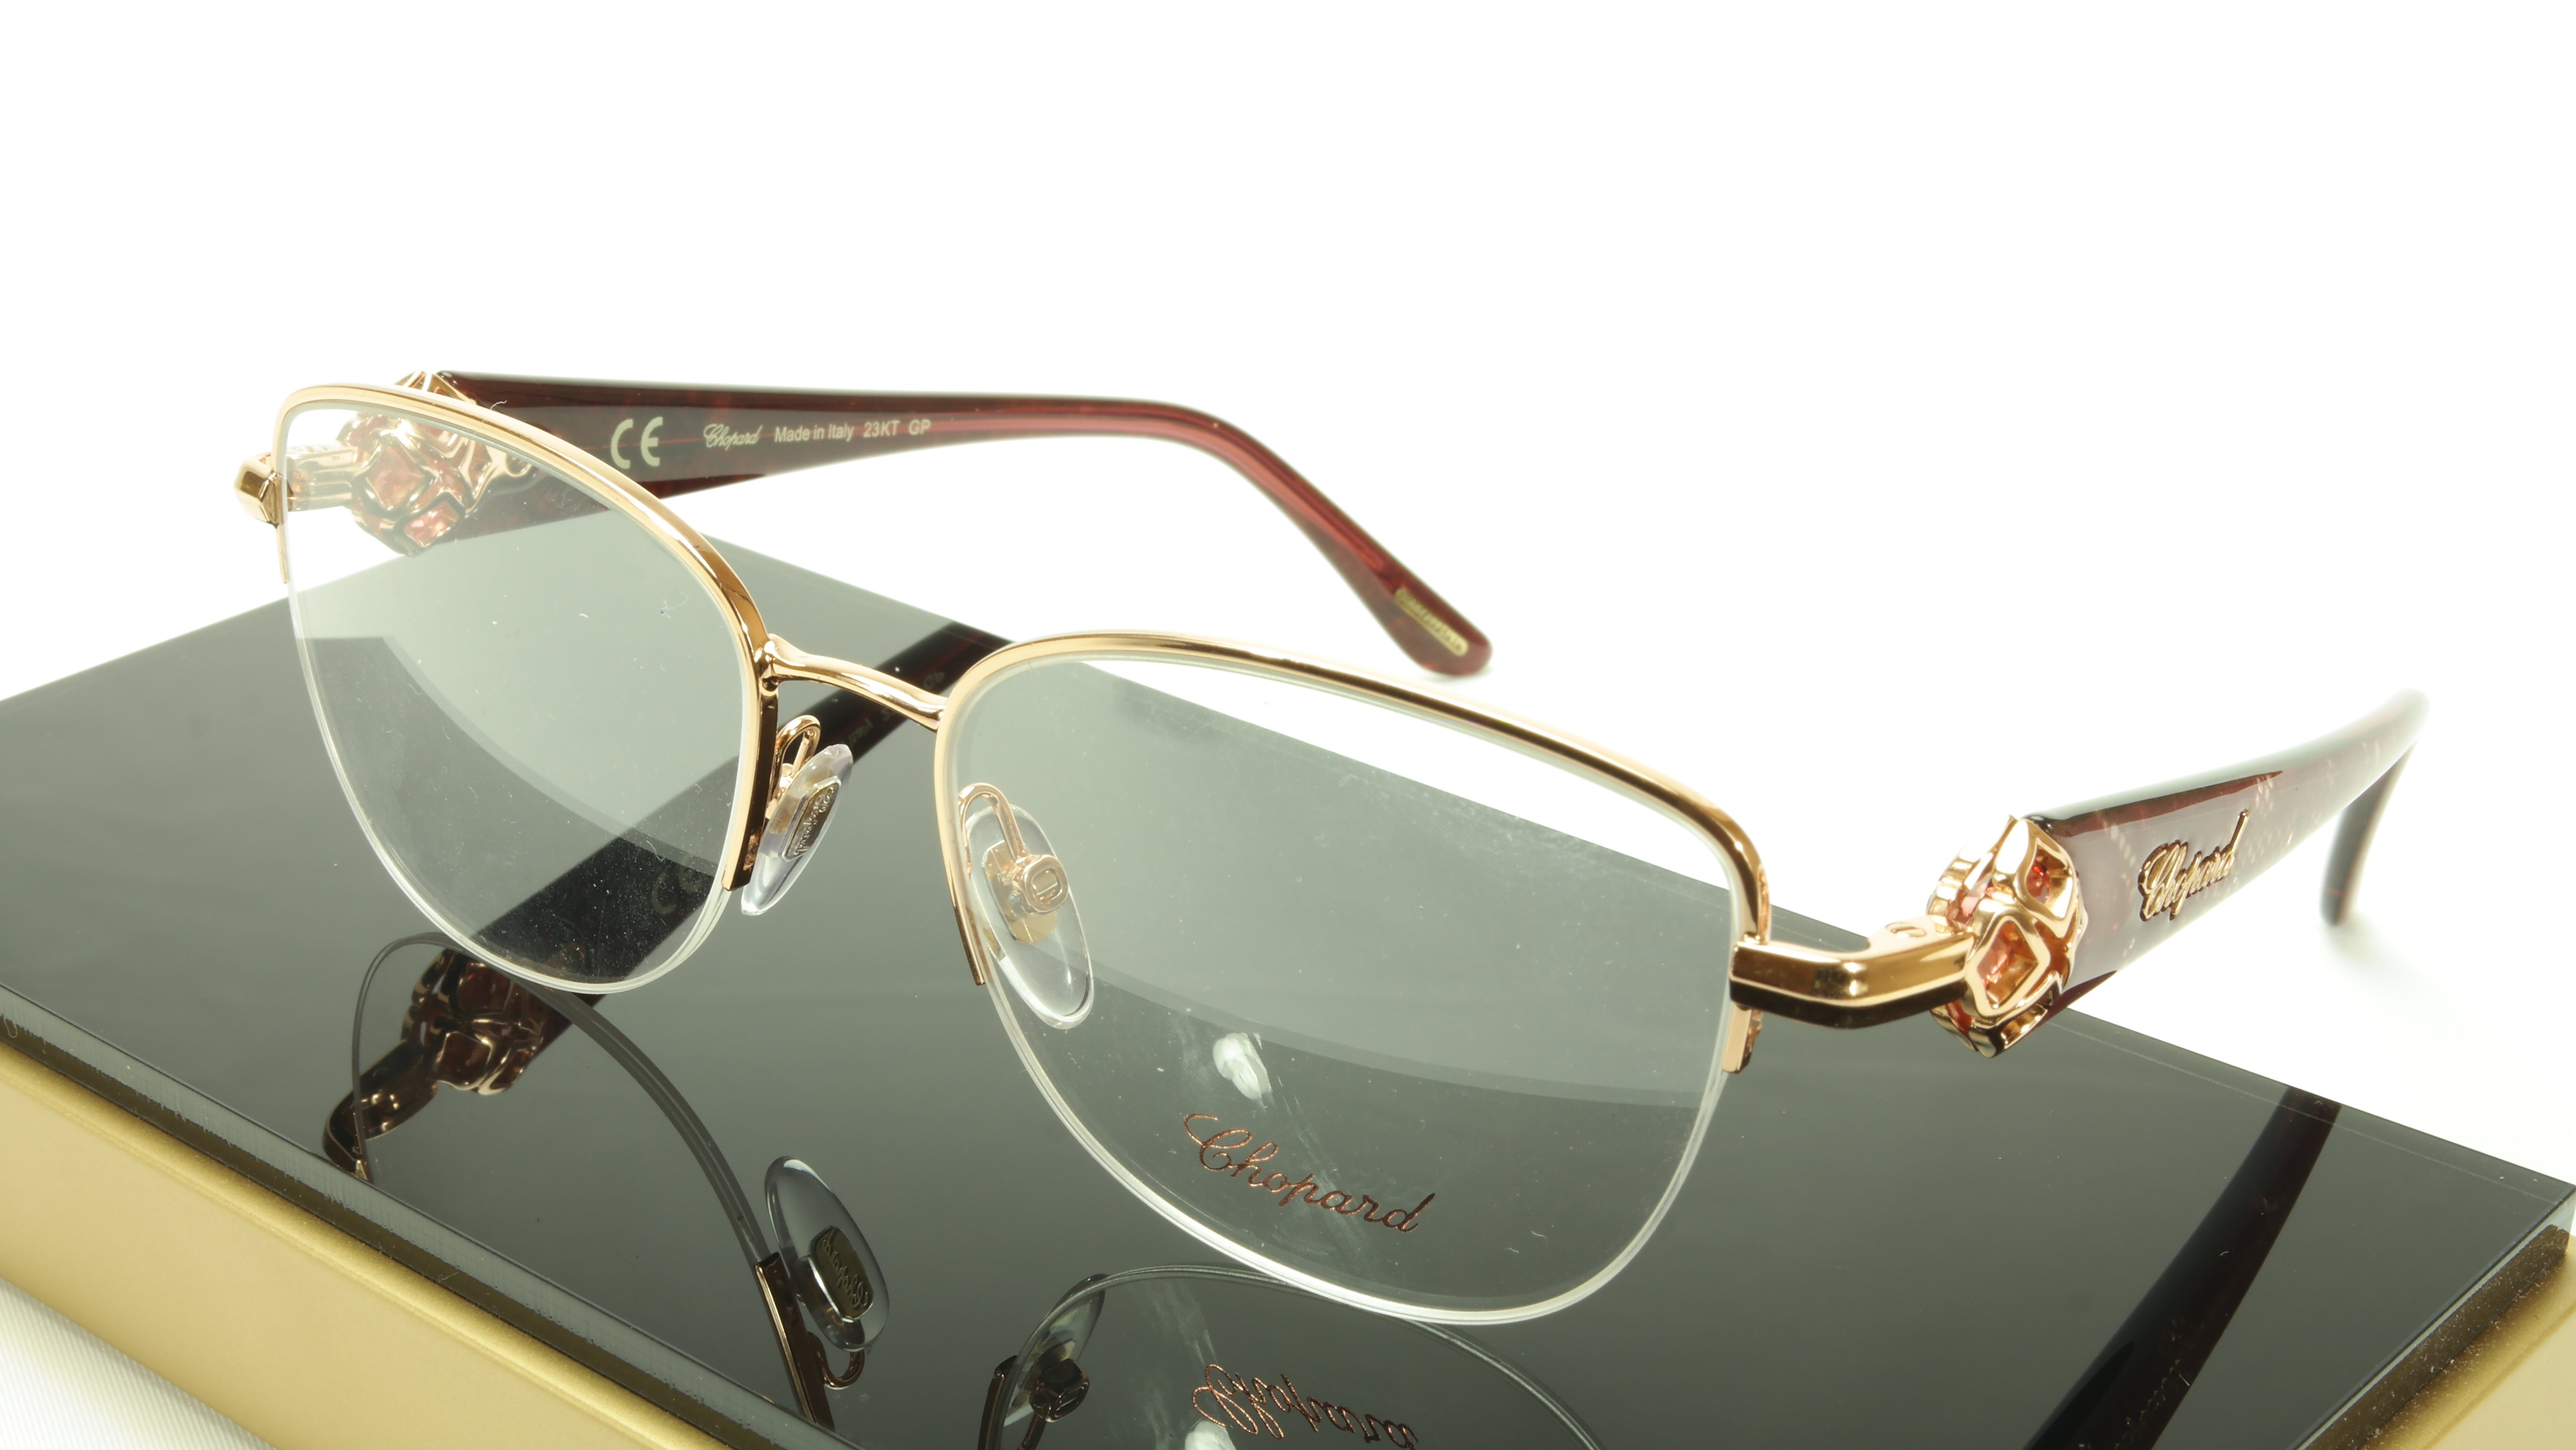 e10a39d228 Chopard Eyeglasses Frame VCH A93S 08FC Acetate Gold Plated Italy Made 53-17 -140